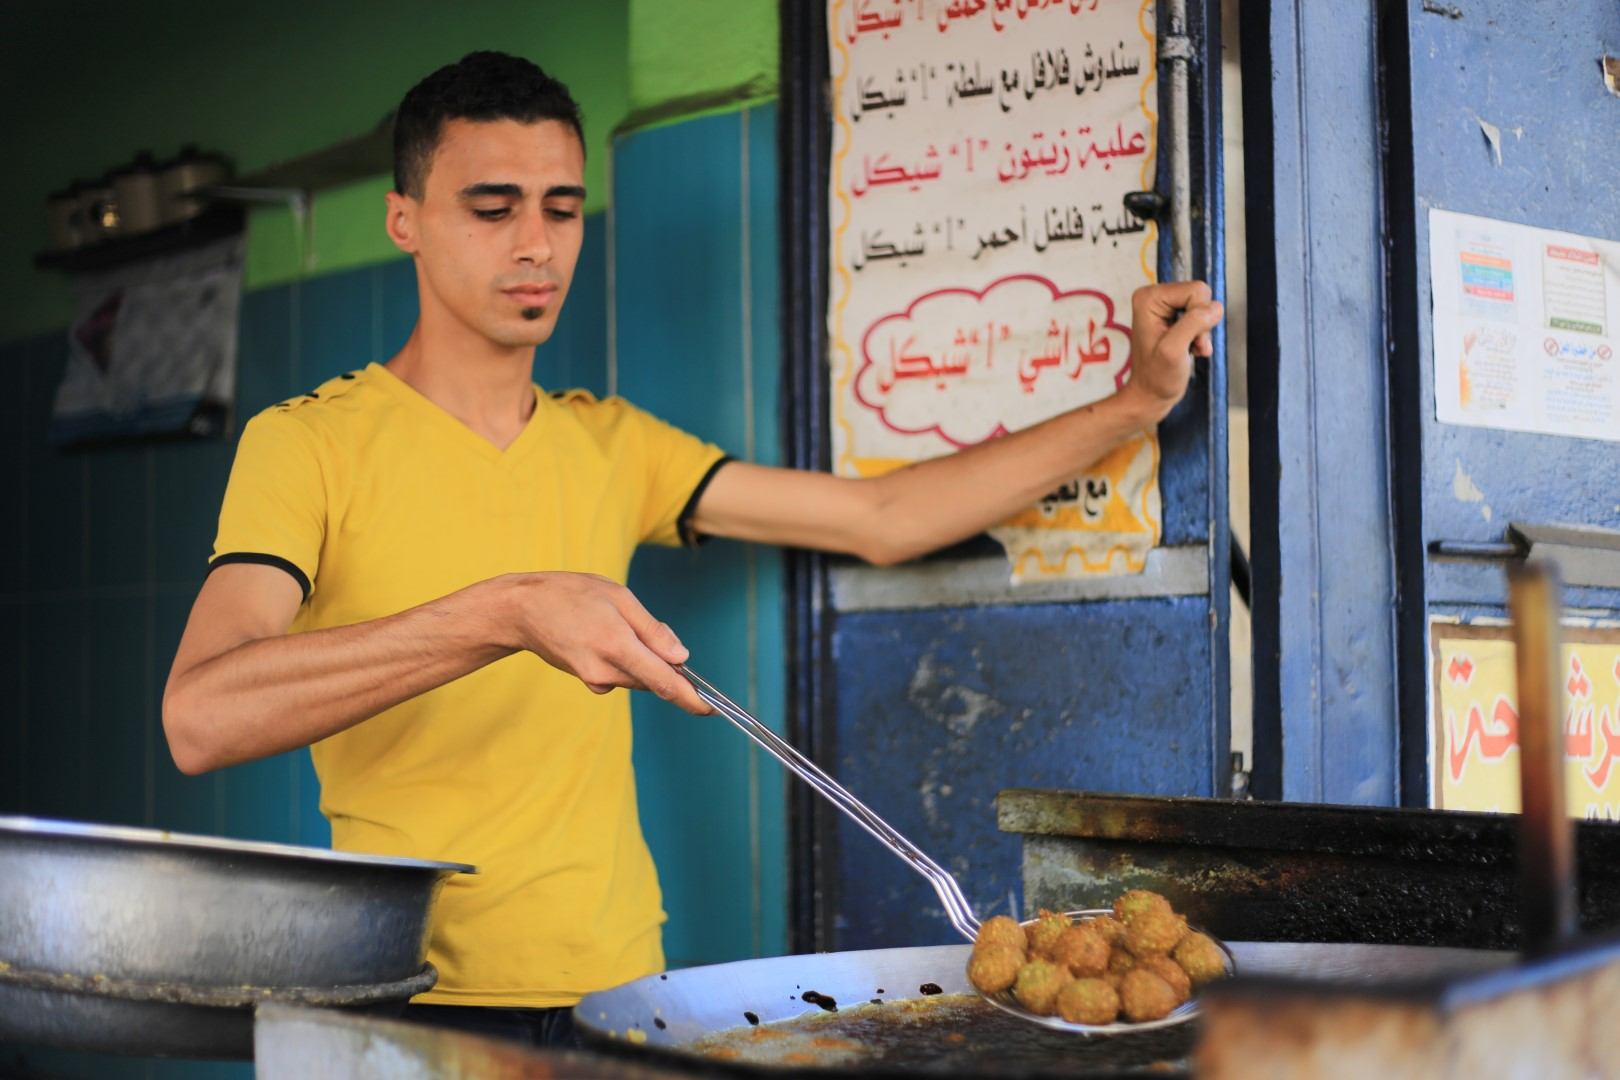 Man is frying Falafel in Gaza